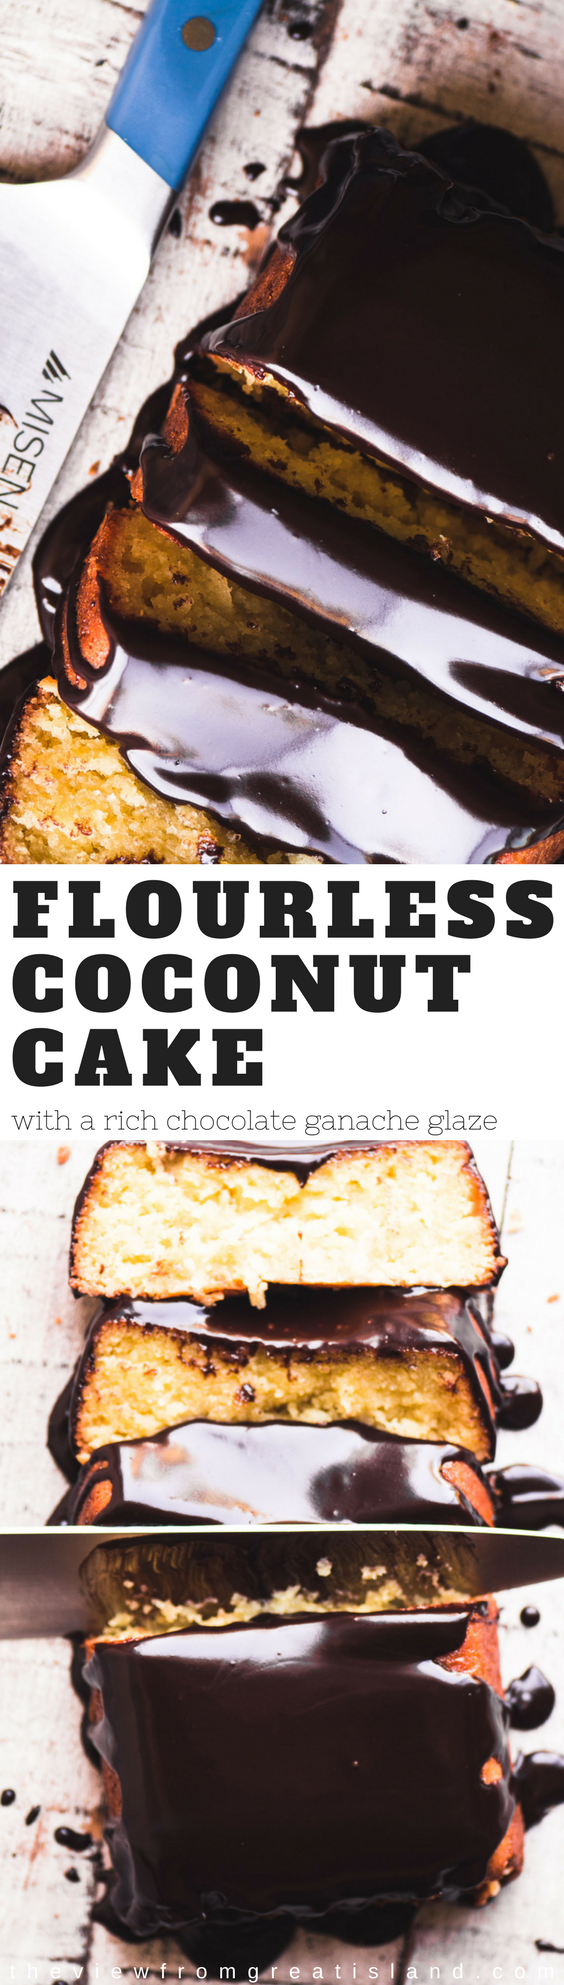 Yotam Ottolenghi's Flourless Coconut Cake ~ this super moist, super decadent pound cake is completely grain free and a must try, even if you aren't on a gluten free diet. #cake #glutenfreecake #flourlesscake #coconutcake #ottolenghi #dessert #poundcake #ganache #easycoconutcake #chocolatecake #chocolate